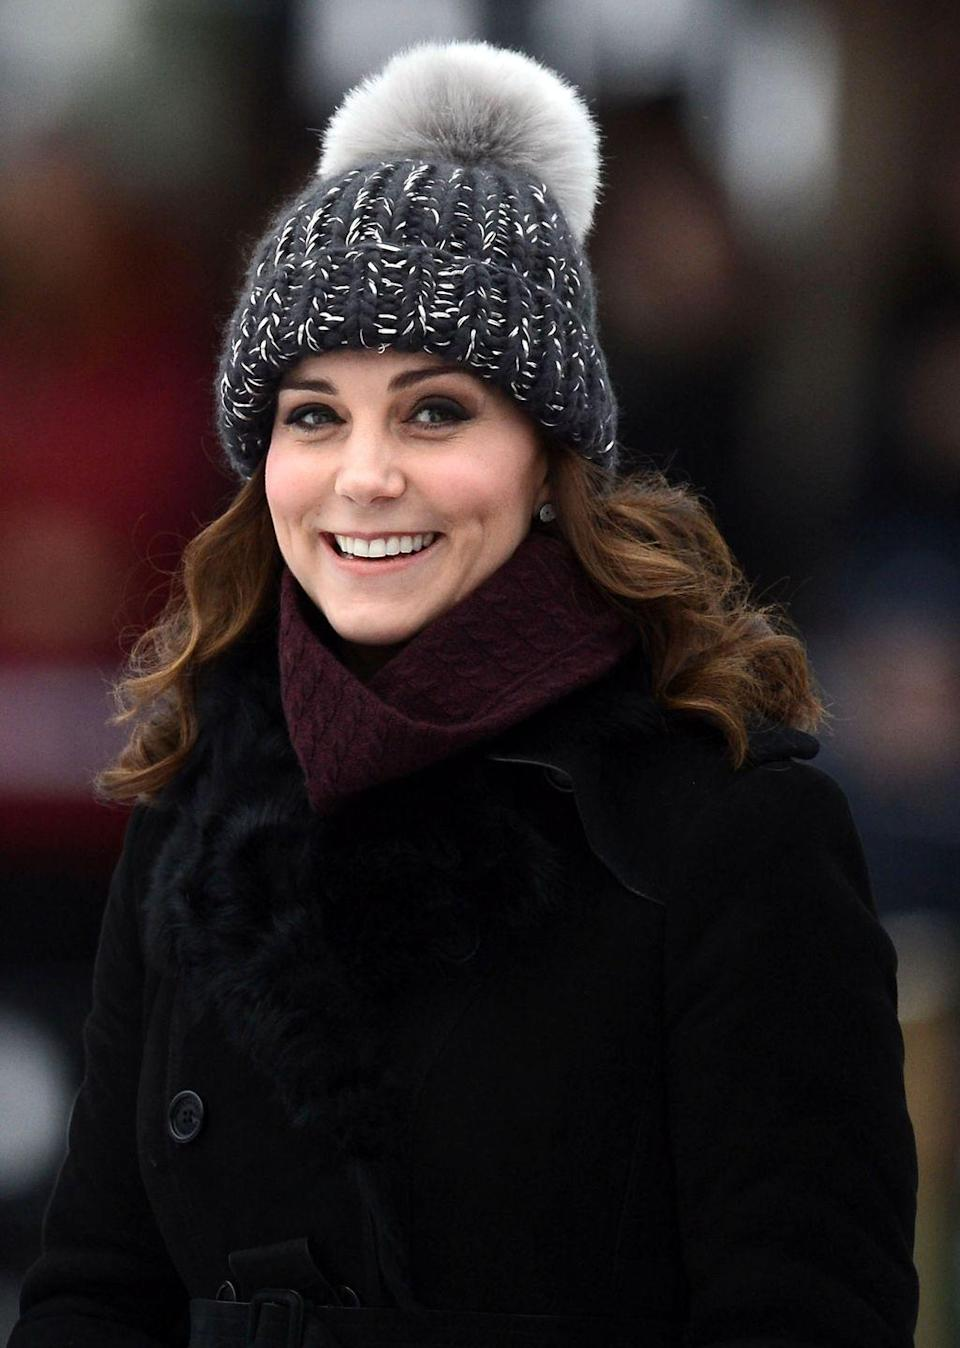 """<p>The Duchess of Cambridge found herself amid yet another fashion controversy when she bundled up in a <span class=""""redactor-unlink"""">Eugenia Kim hat</span> in Stockholm, Sweden, this February. The charcoal-knit beanie was reportedly <a href=""""https://www.glamour.com/story/kate-middleton-controversy-bobble-hat"""" rel=""""nofollow noopener"""" target=""""_blank"""" data-ylk=""""slk:made with real fox fur"""" class=""""link rapid-noclick-resp"""">made with real fox fur</a>, and the internet was outraged. PETA was back on Kate's heels, wanting proof that the fur was faux.</p><p>""""If the Duchess of Cambridge's hat is made with faux fur, PETA is delighted to see her take a leaf out of the Duchess of Cornwall's book—Camilla reportedly swapped all her fur hats for luxurious faux-fur ones,"""" <a href=""""https://www.mirror.co.uk/news/uk-news/kate-middleton-faux-fur-tour-11938751"""" rel=""""nofollow noopener"""" target=""""_blank"""" data-ylk=""""slk:said PETA director Elisa Allen"""" class=""""link rapid-noclick-resp"""">said PETA director Elisa Allen</a>.</p>"""